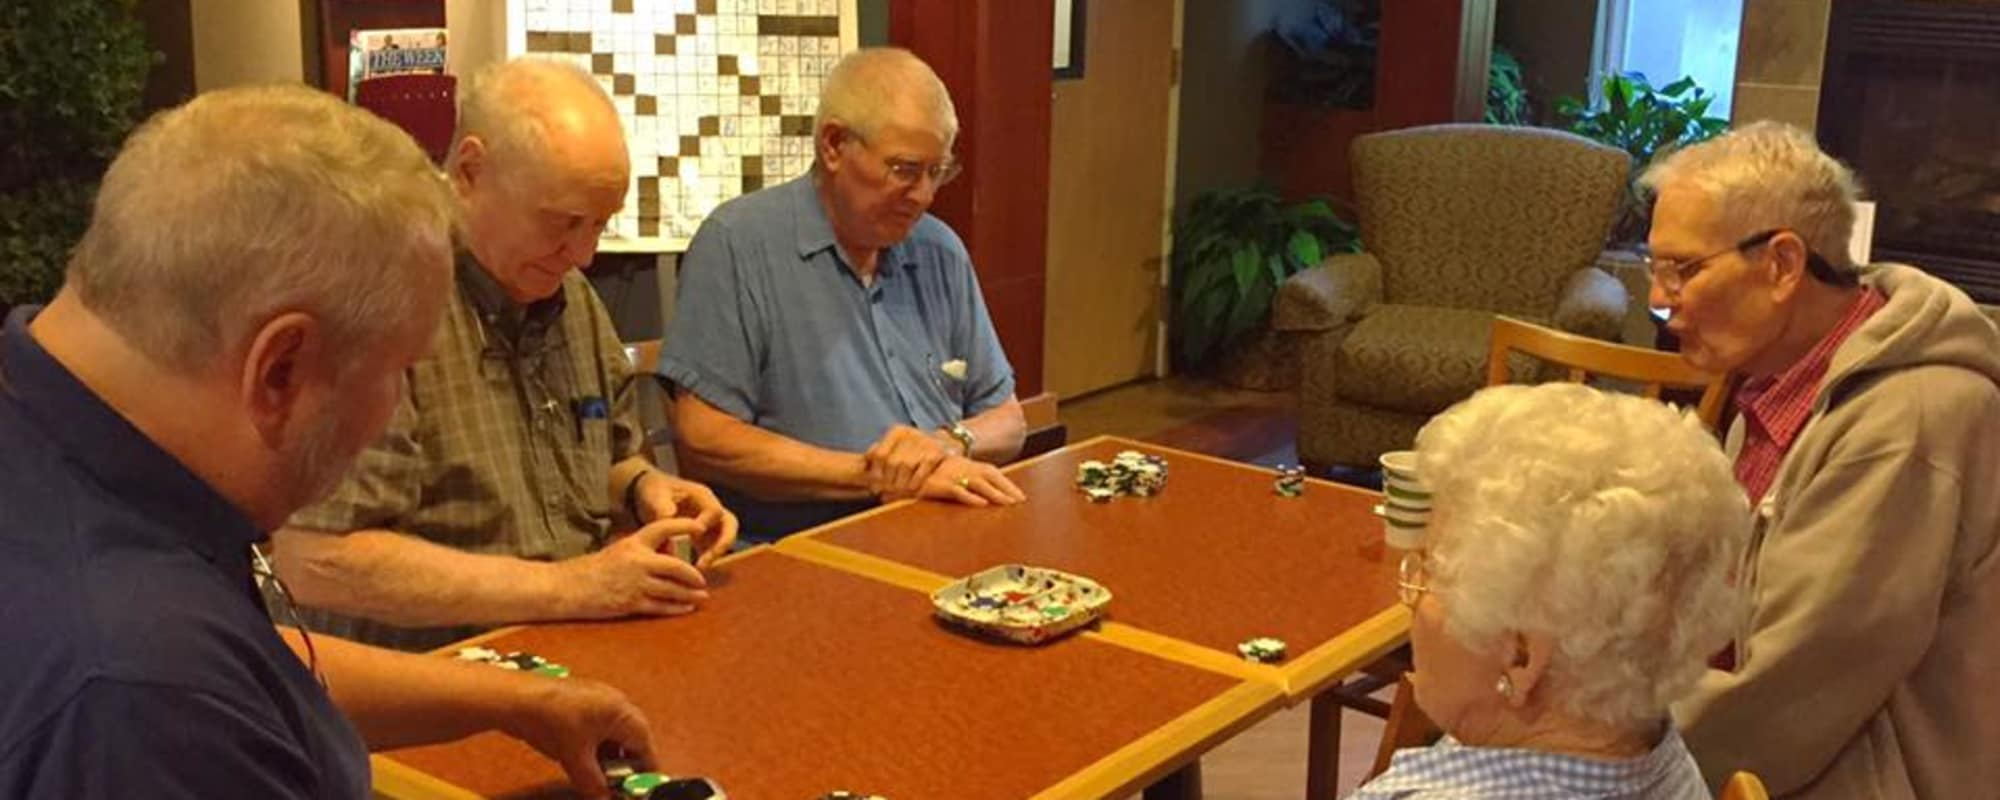 Seniors playing games together at The Creekside in Woodinville, Washington